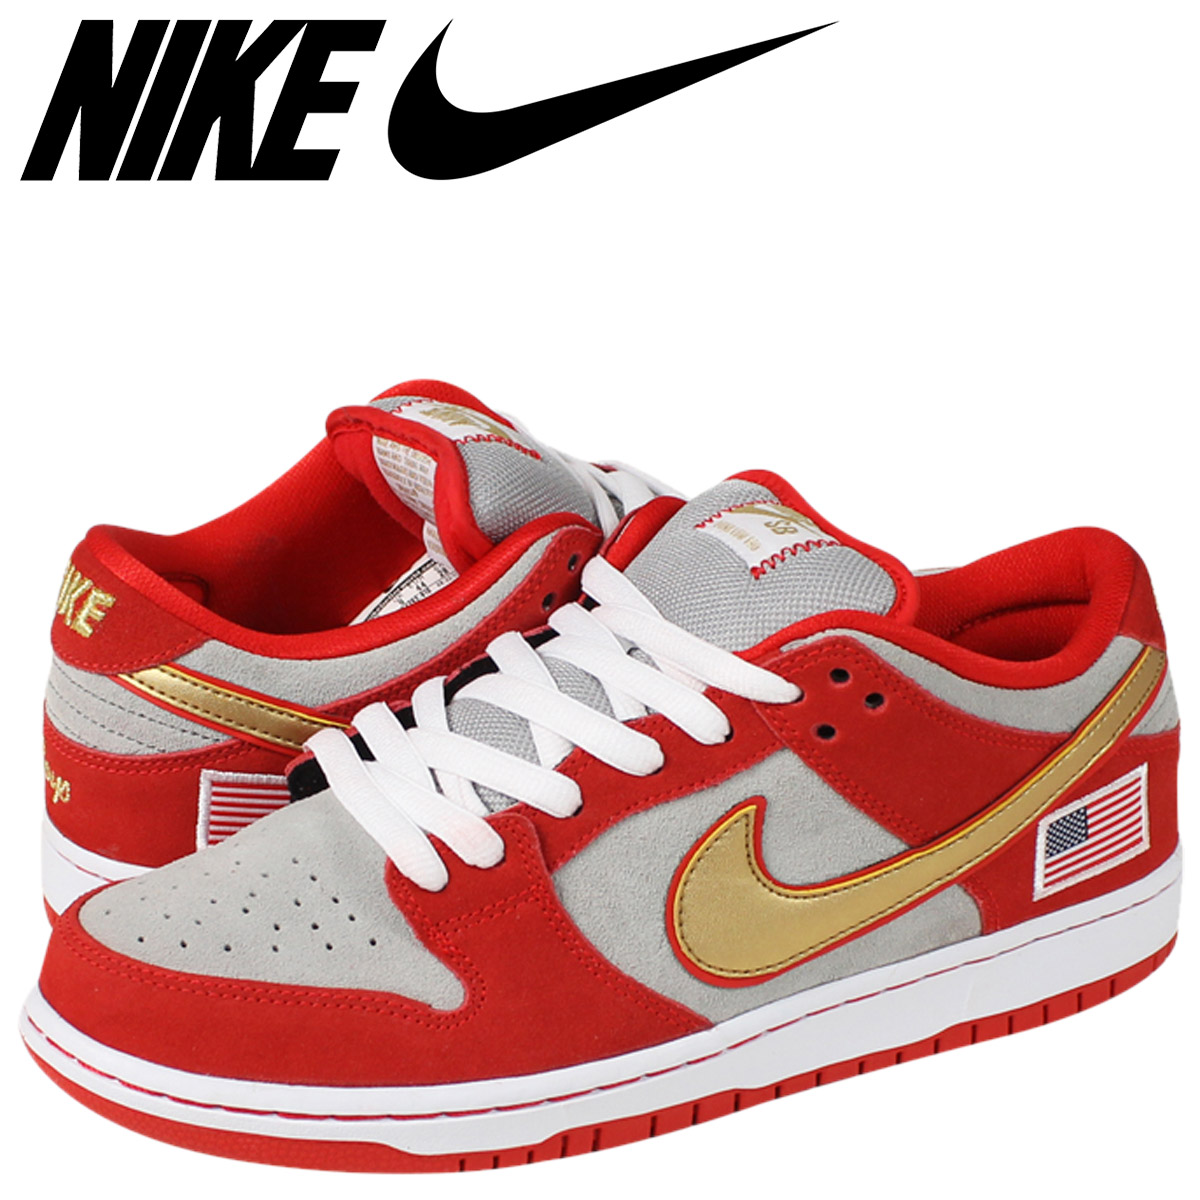 purchase cheap 8580f a1947 NIKE Nike dunk sneakers DUNK LOW SB NASTY BOYS dunk low S B 304,292-610  challenge red men